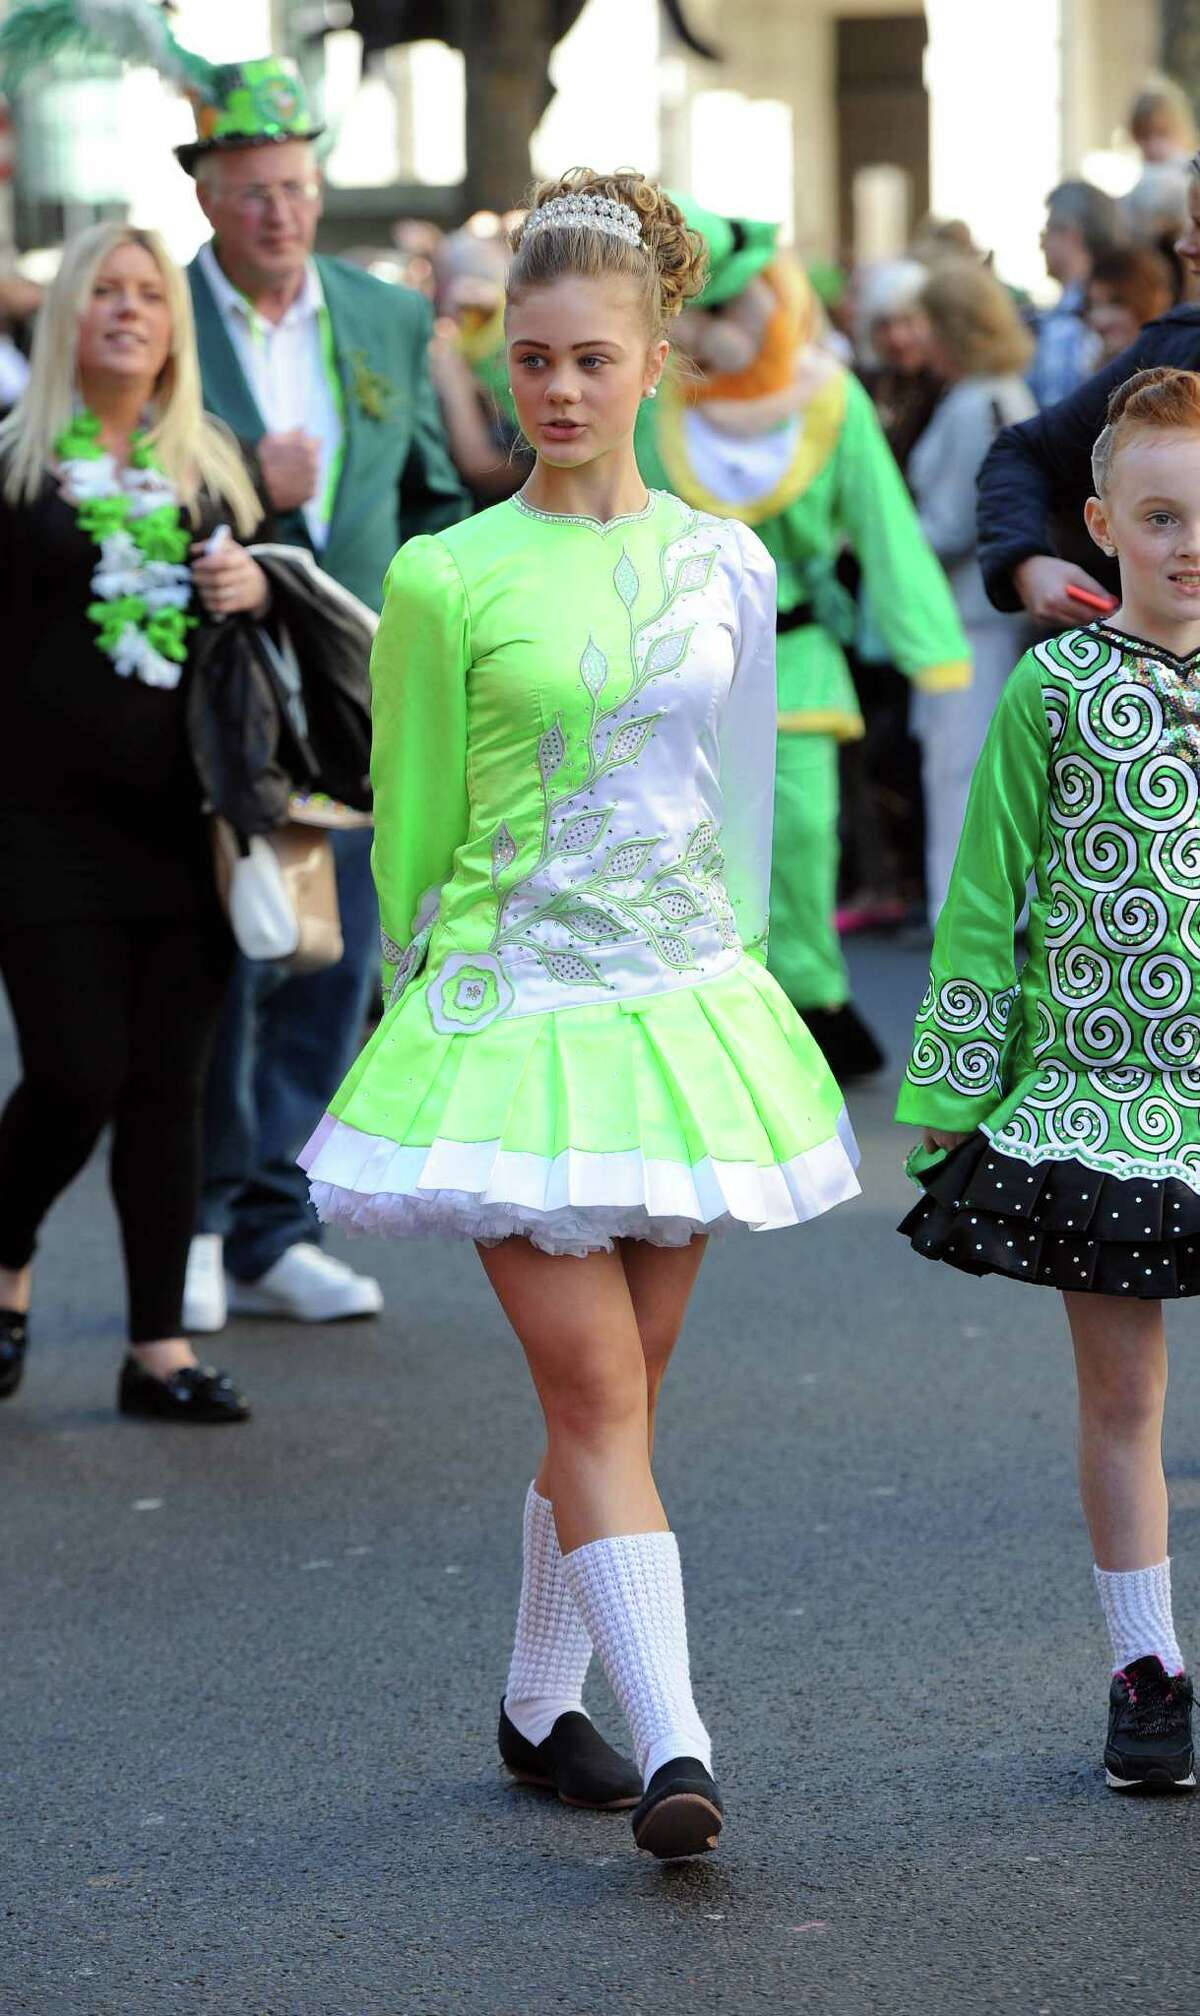 LONDON, ENGLAND - MARCH 16: A dancer dressed in an Irish themed costume participates in the annual St. Patrick's Day Festival as it passes from Piccadilly to Trafalgar Square through Haymarket on March 16, 2014 in London, England.